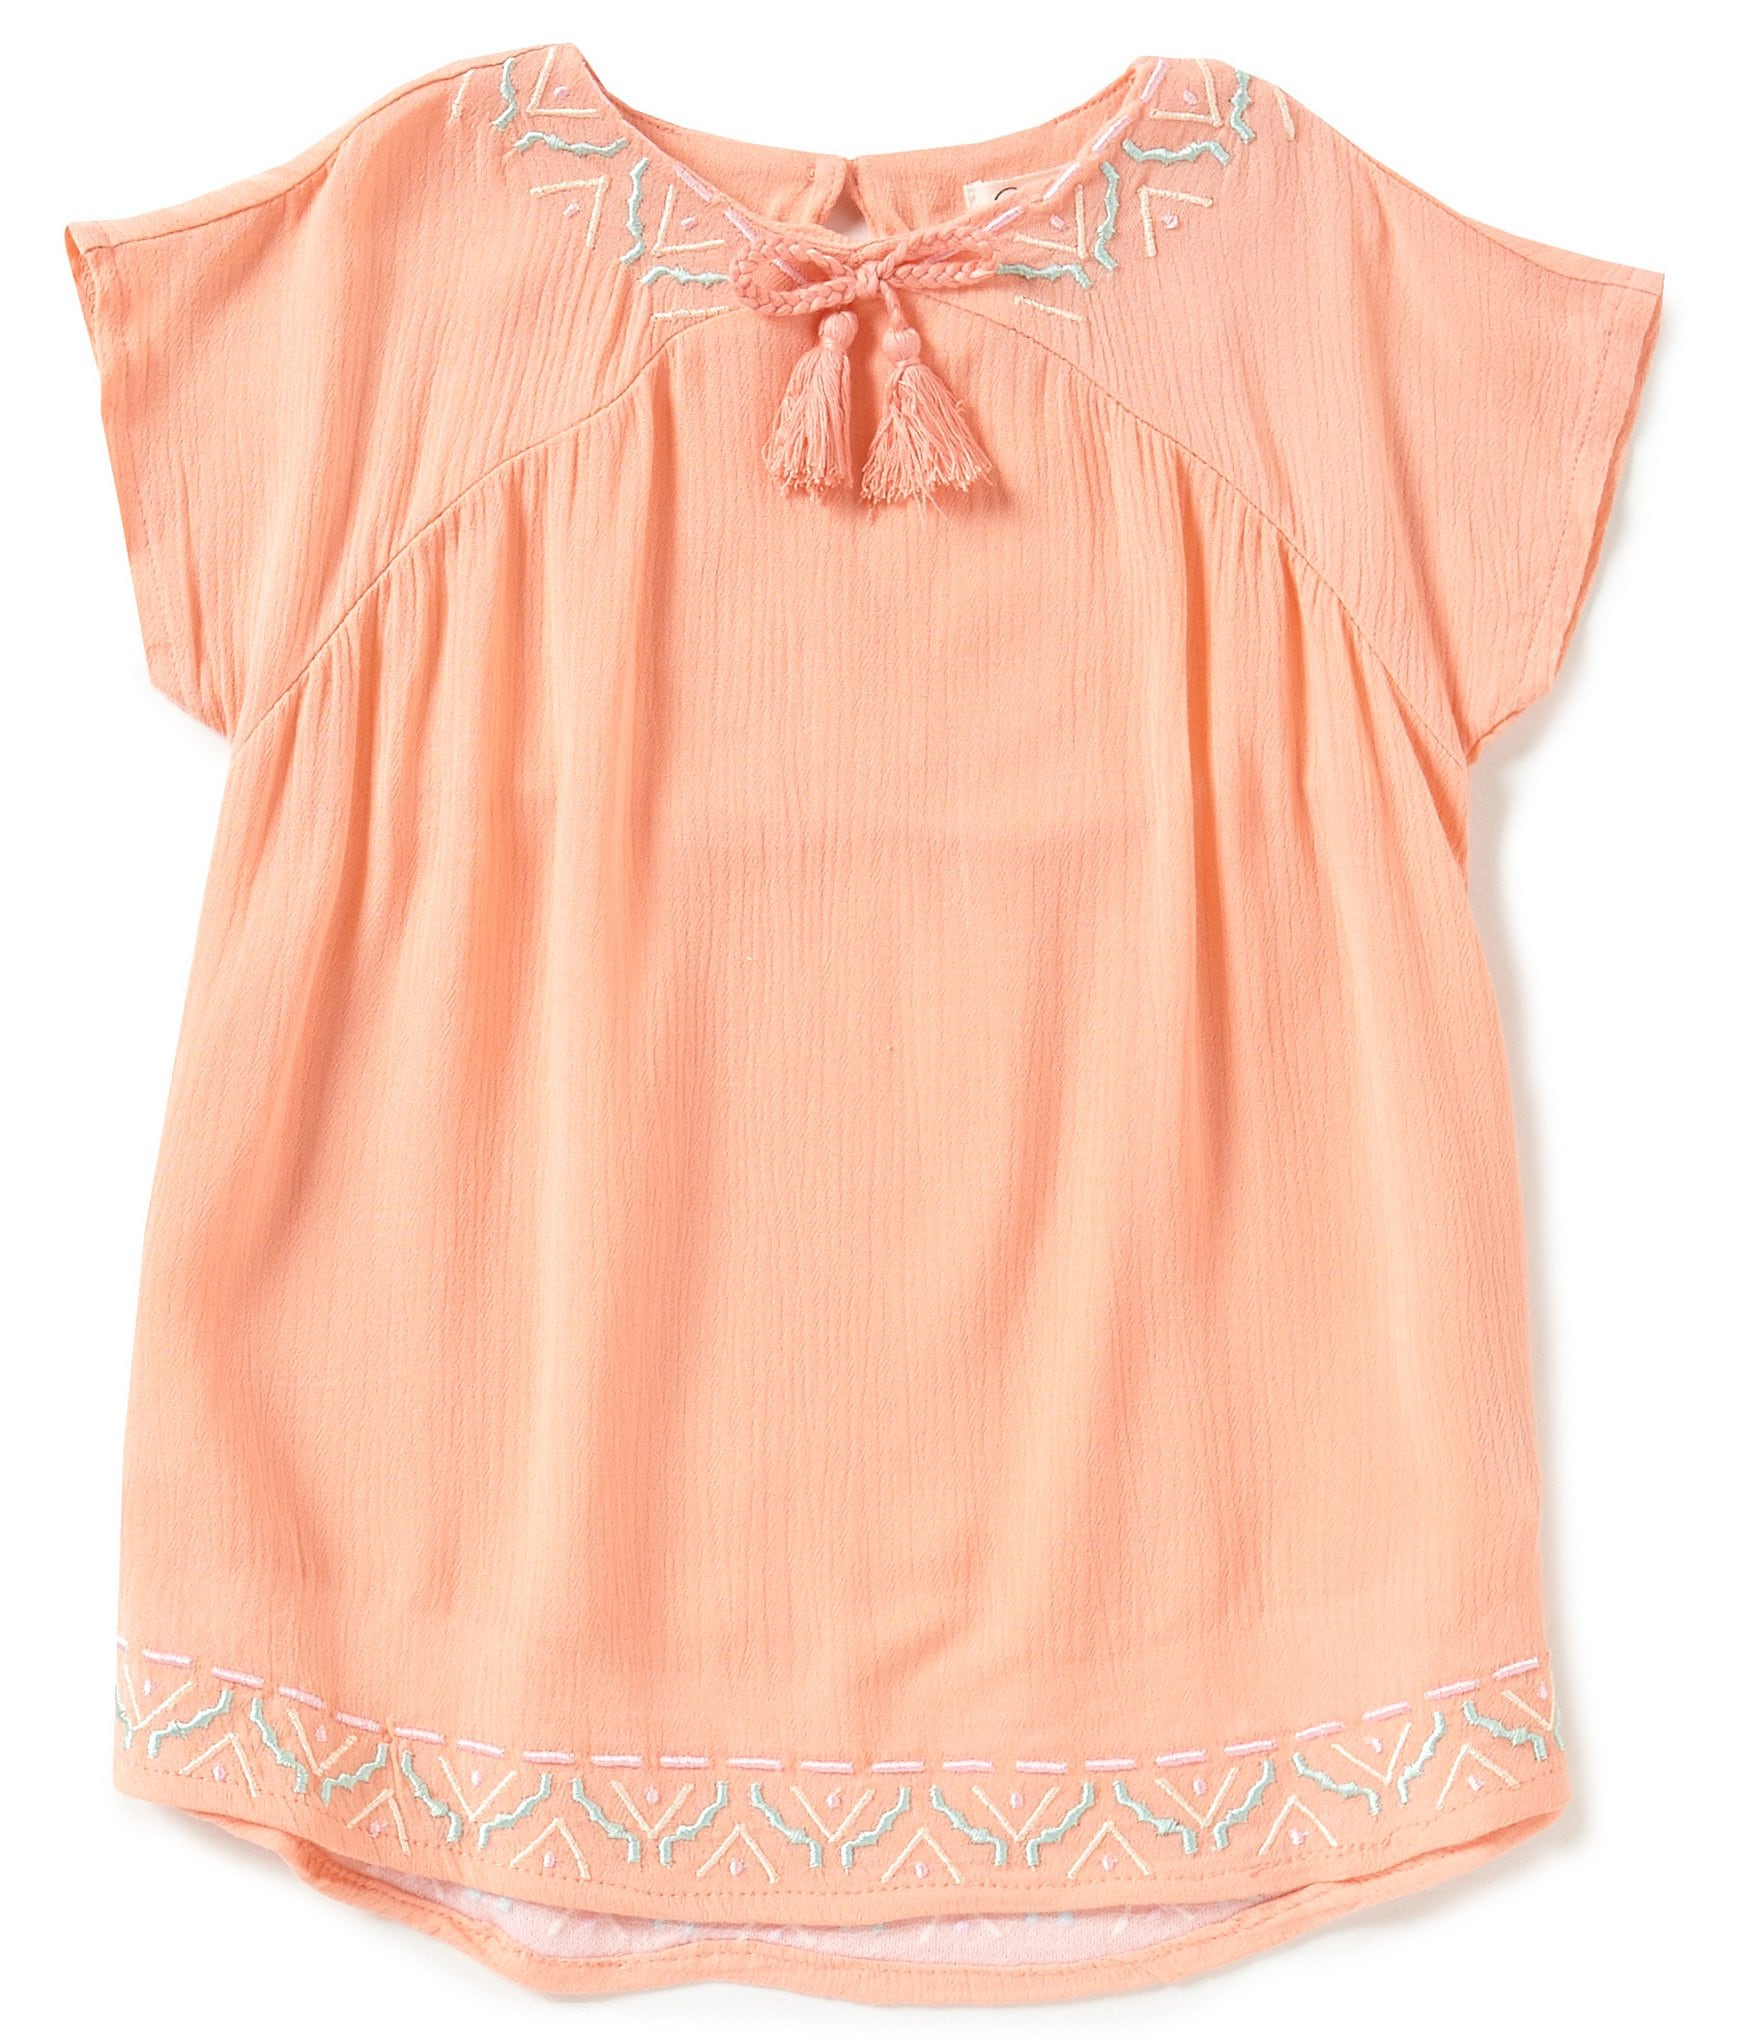 Jessica Simpson Baby Girls 12 24 Months Swimsuit Coverup